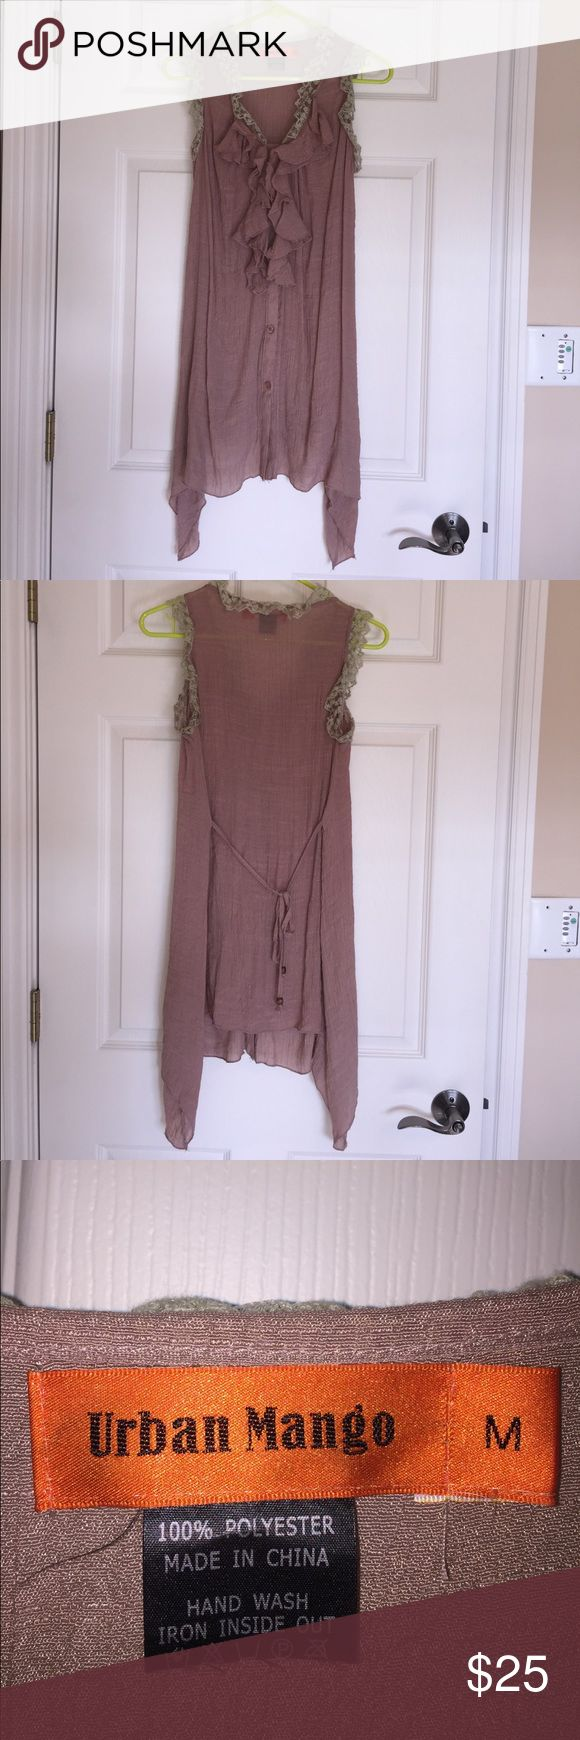 Sleeveless Button Up Top with Lace and Ruffles Sleeveless dusty rose colored tunic top, button up front with a tie back. Ruffles accent the front yoke while a cream colored lace edges the neckline and arm holes. Size medium, rarely worn. Urban Mango Tops Tunics